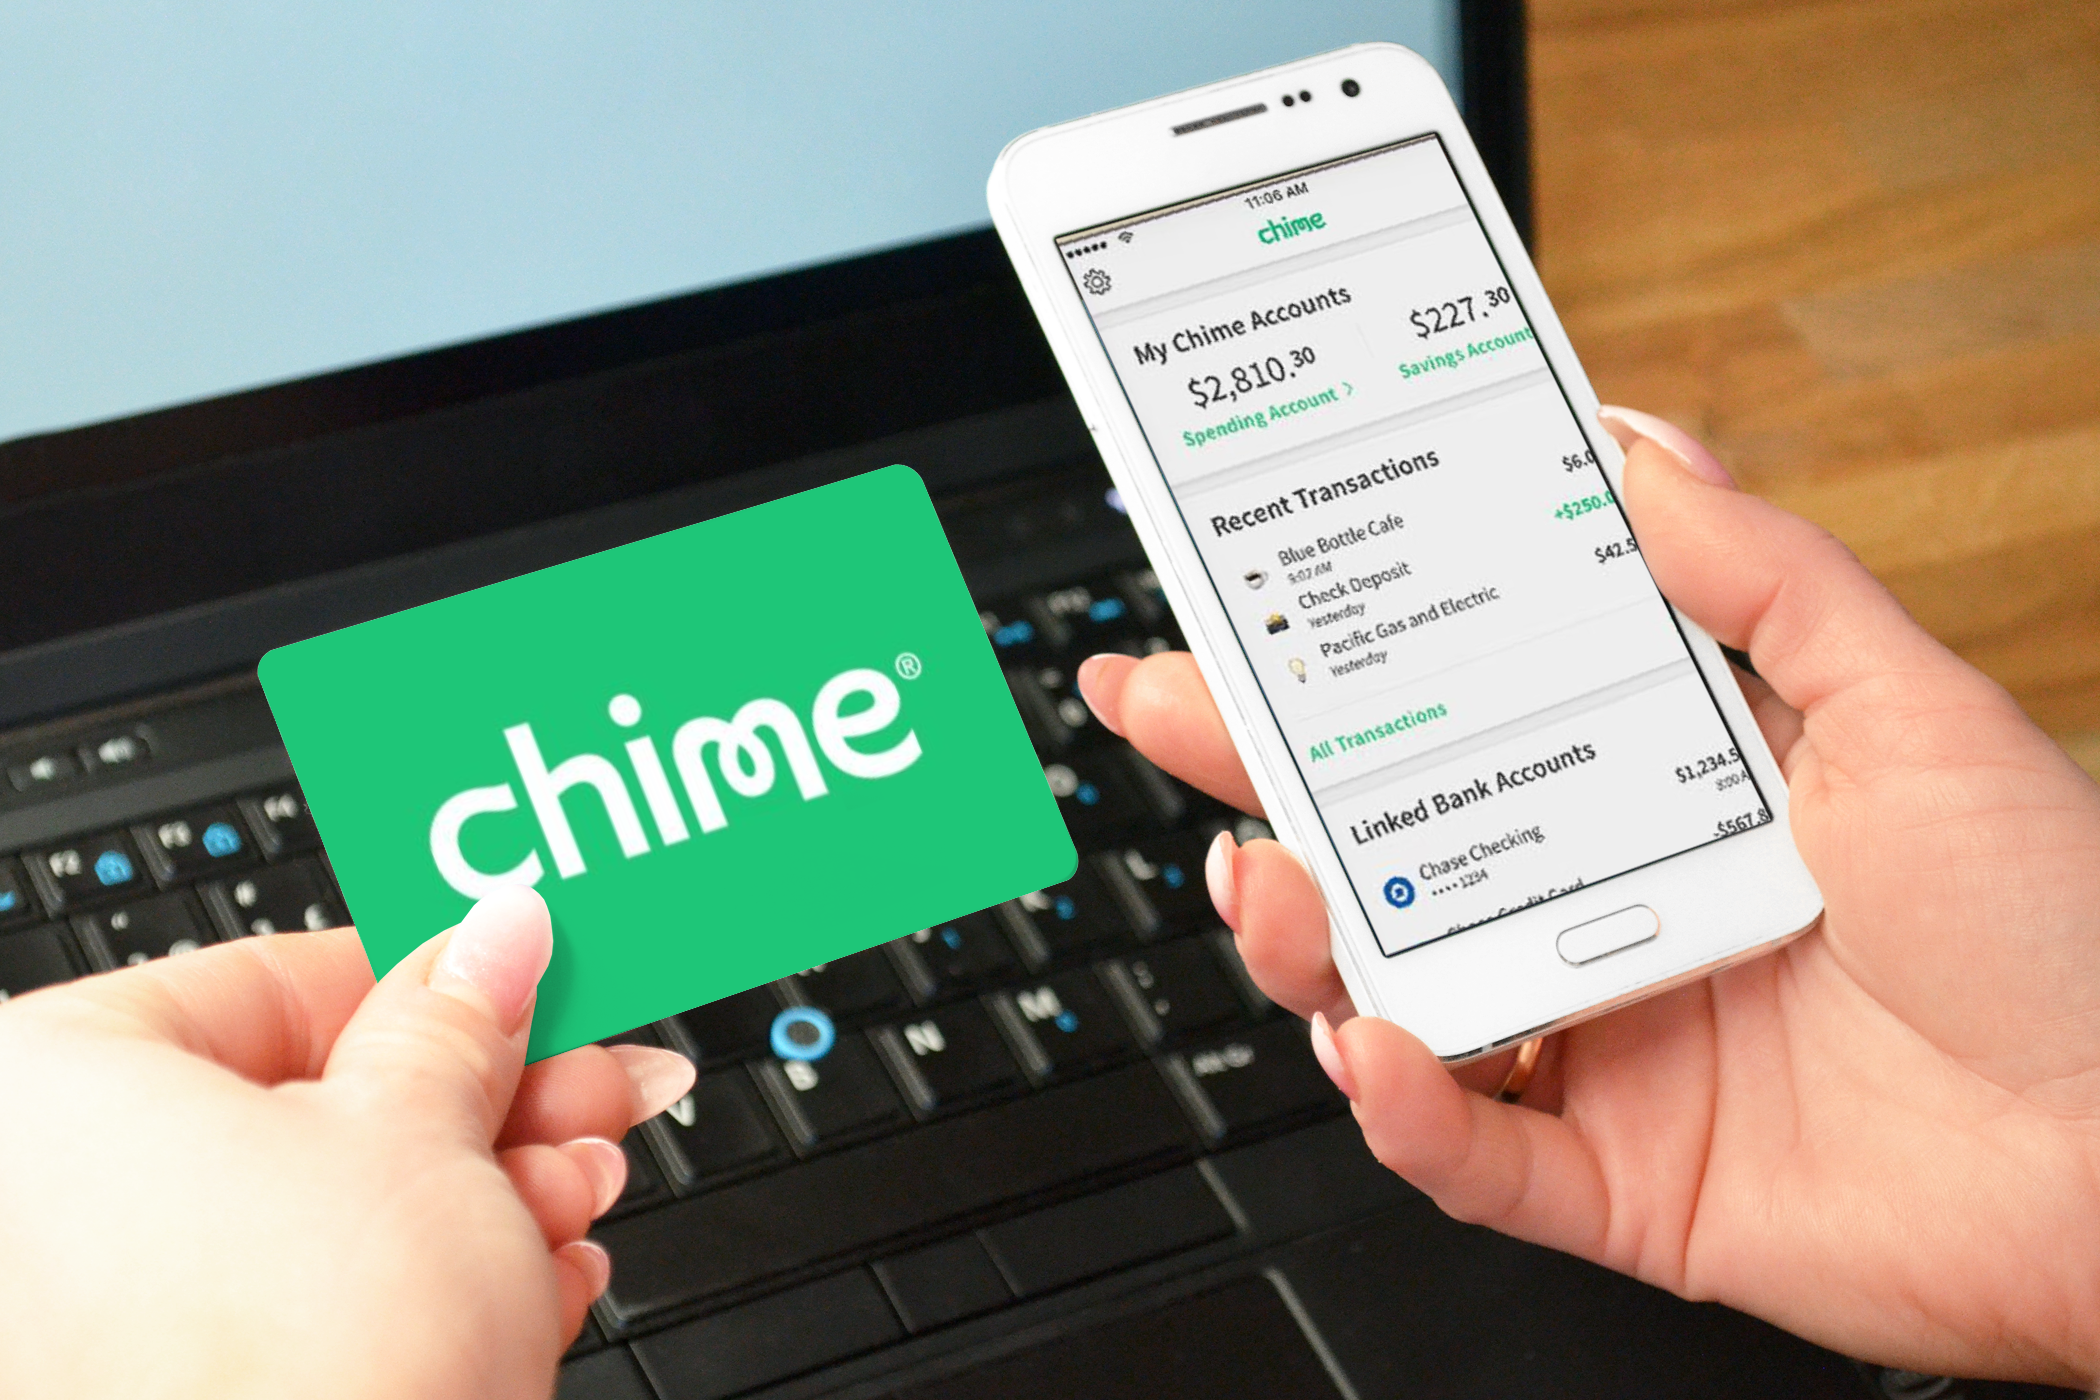 Chime initial public offering IPO